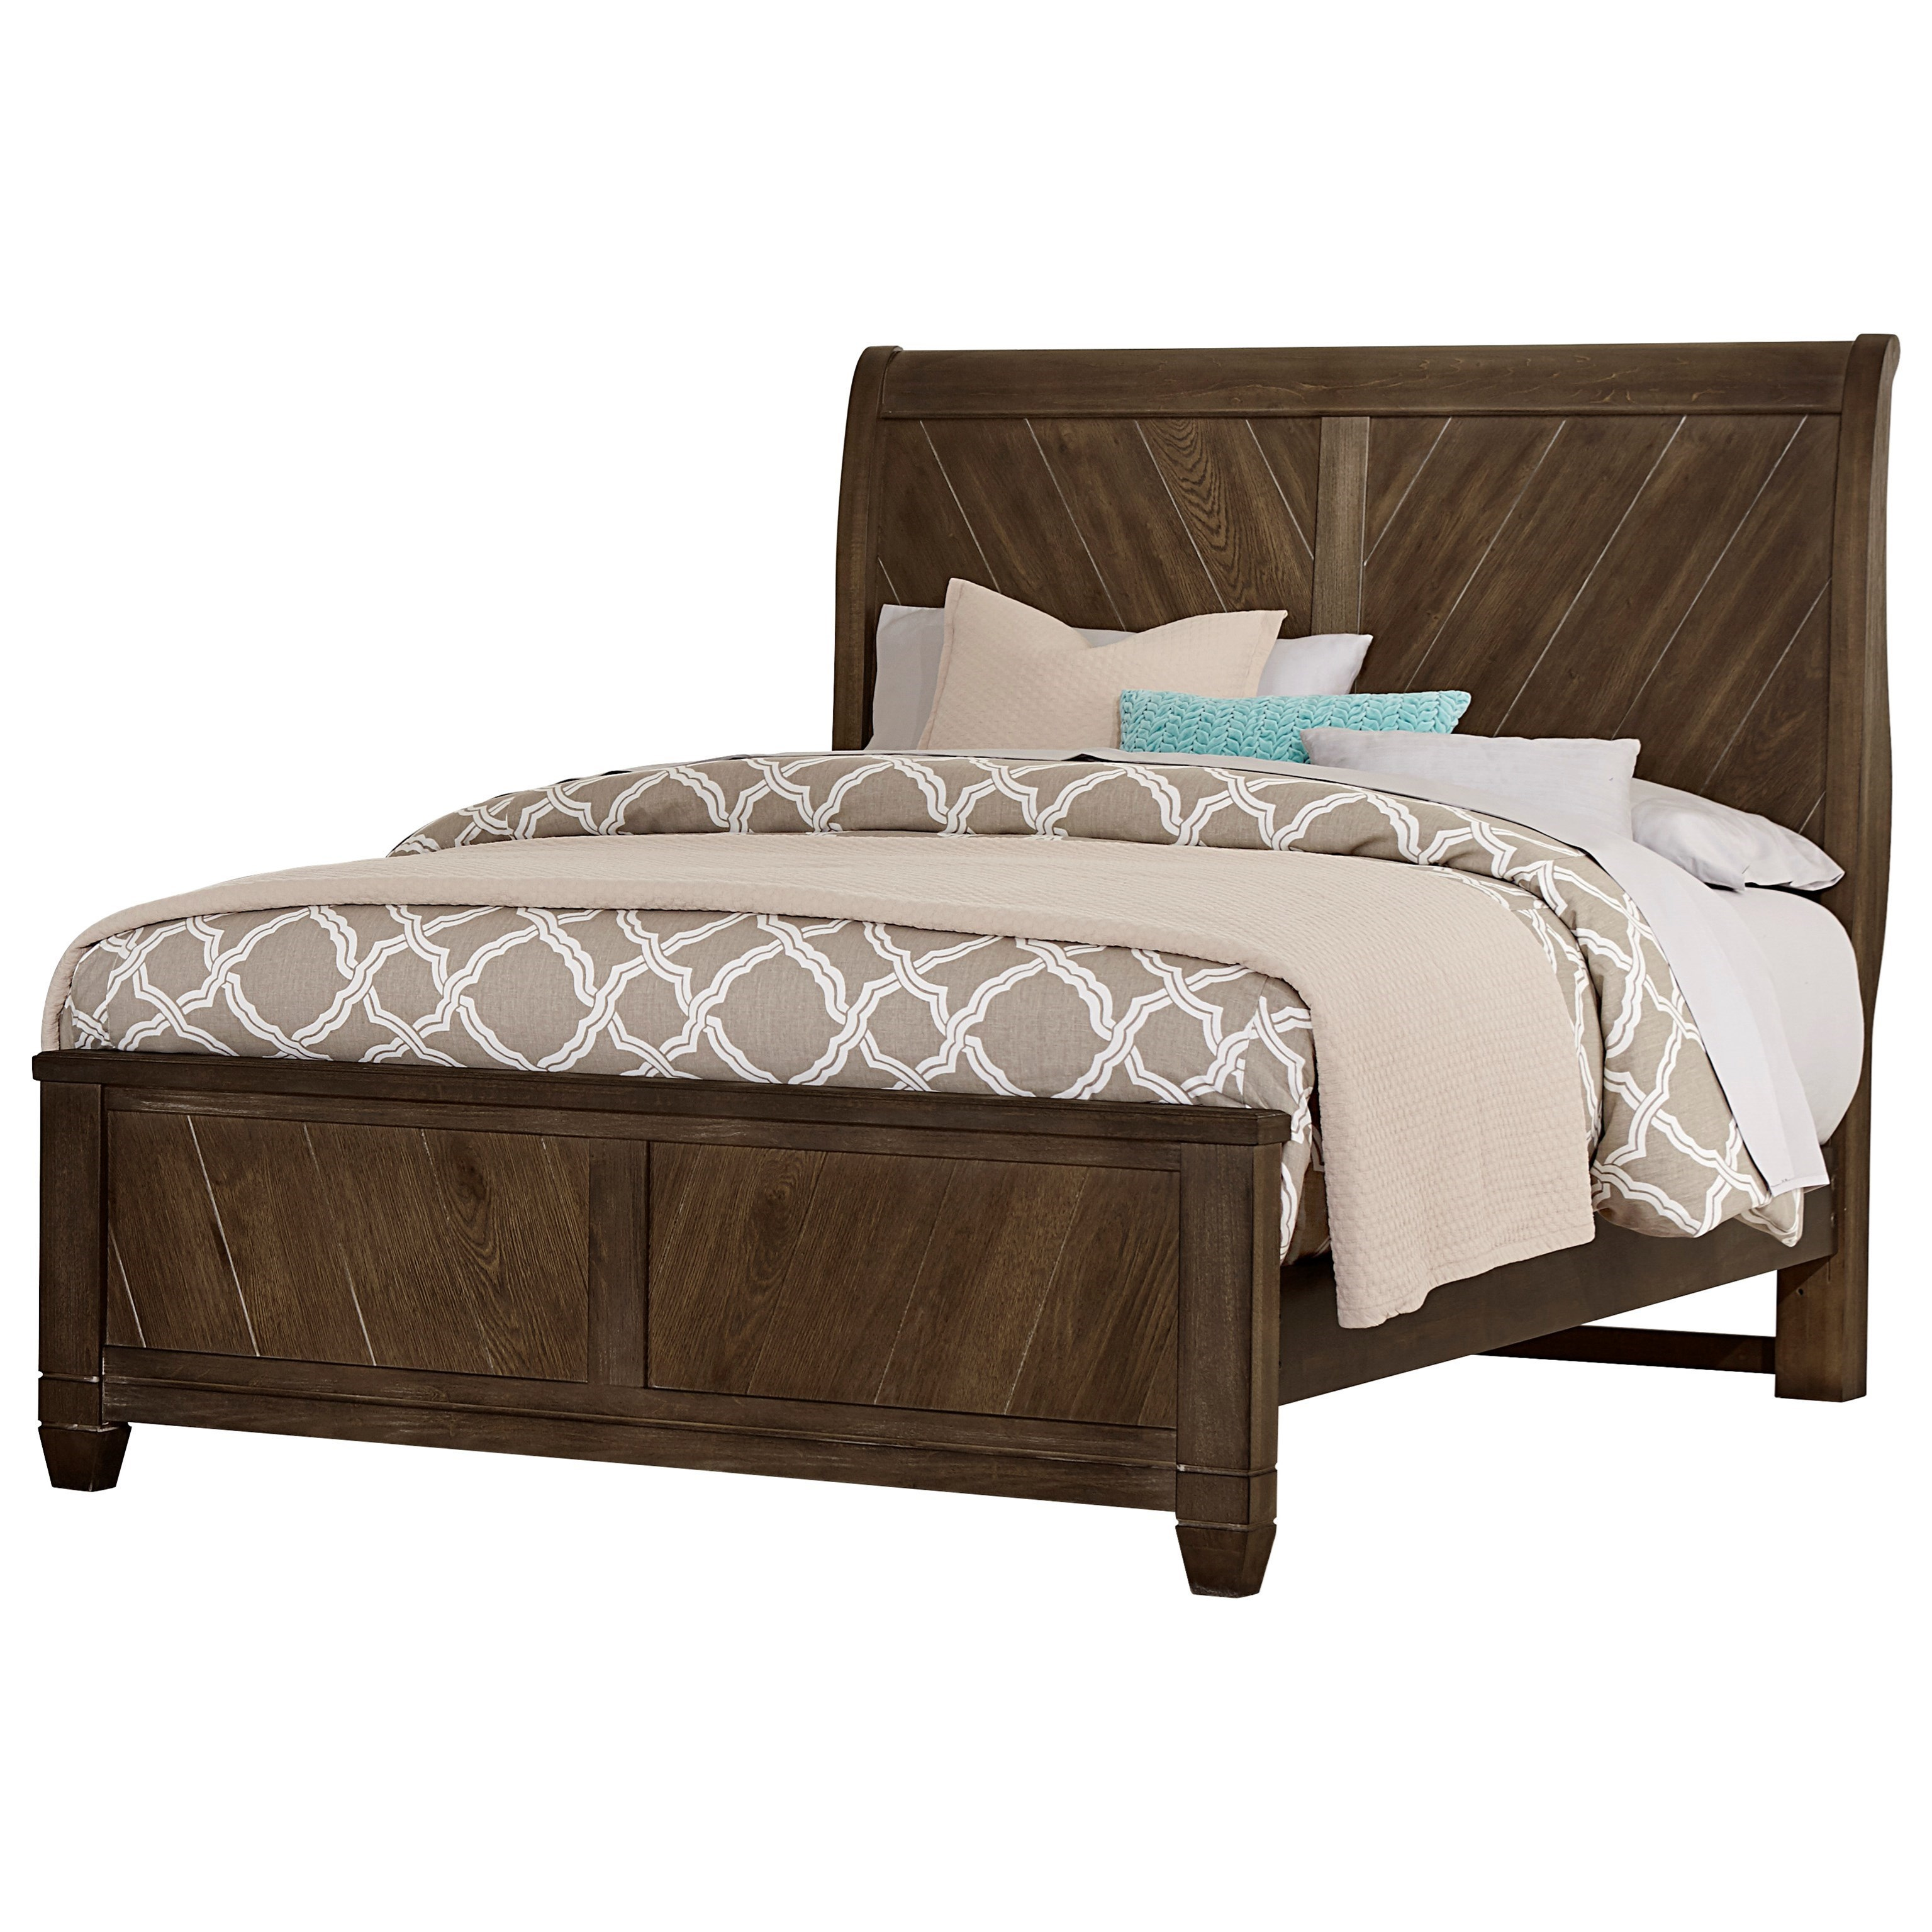 Beautiful Vaughan Bassett Rustic CottageQueen Sleigh Bed